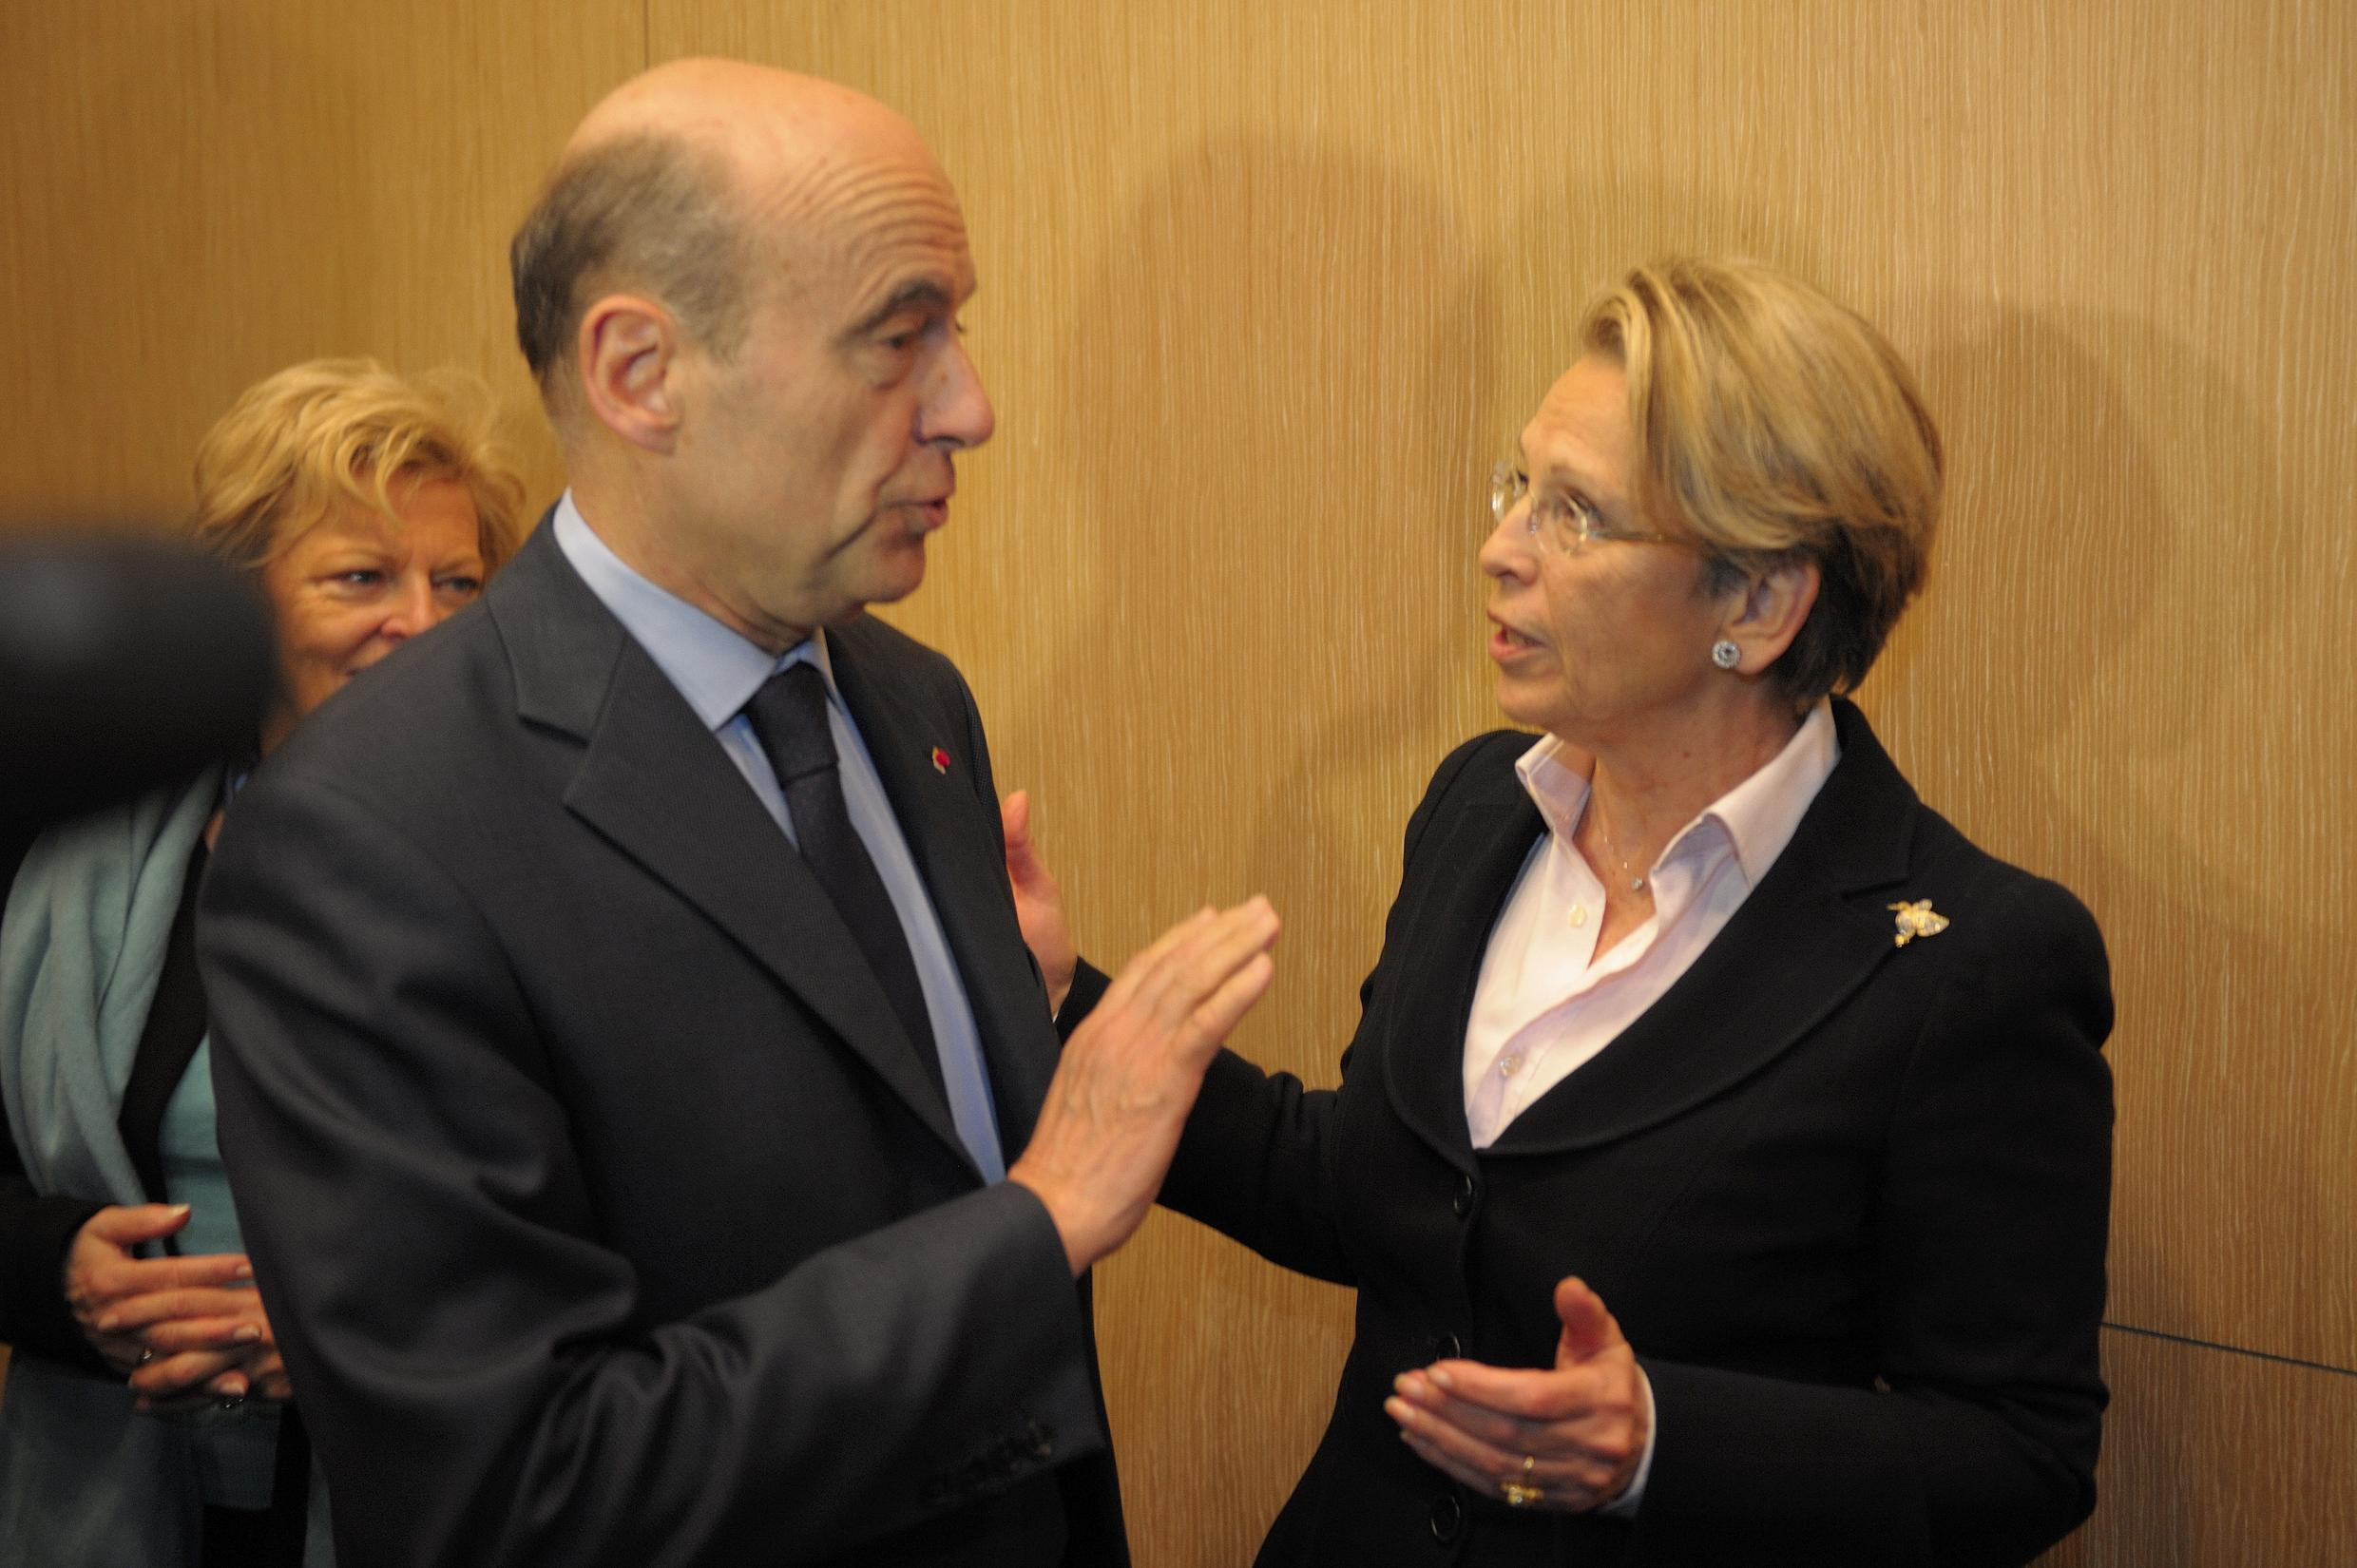 Alain Juppé with much-criticised Foreign Minister Michèle Alliot-Marie